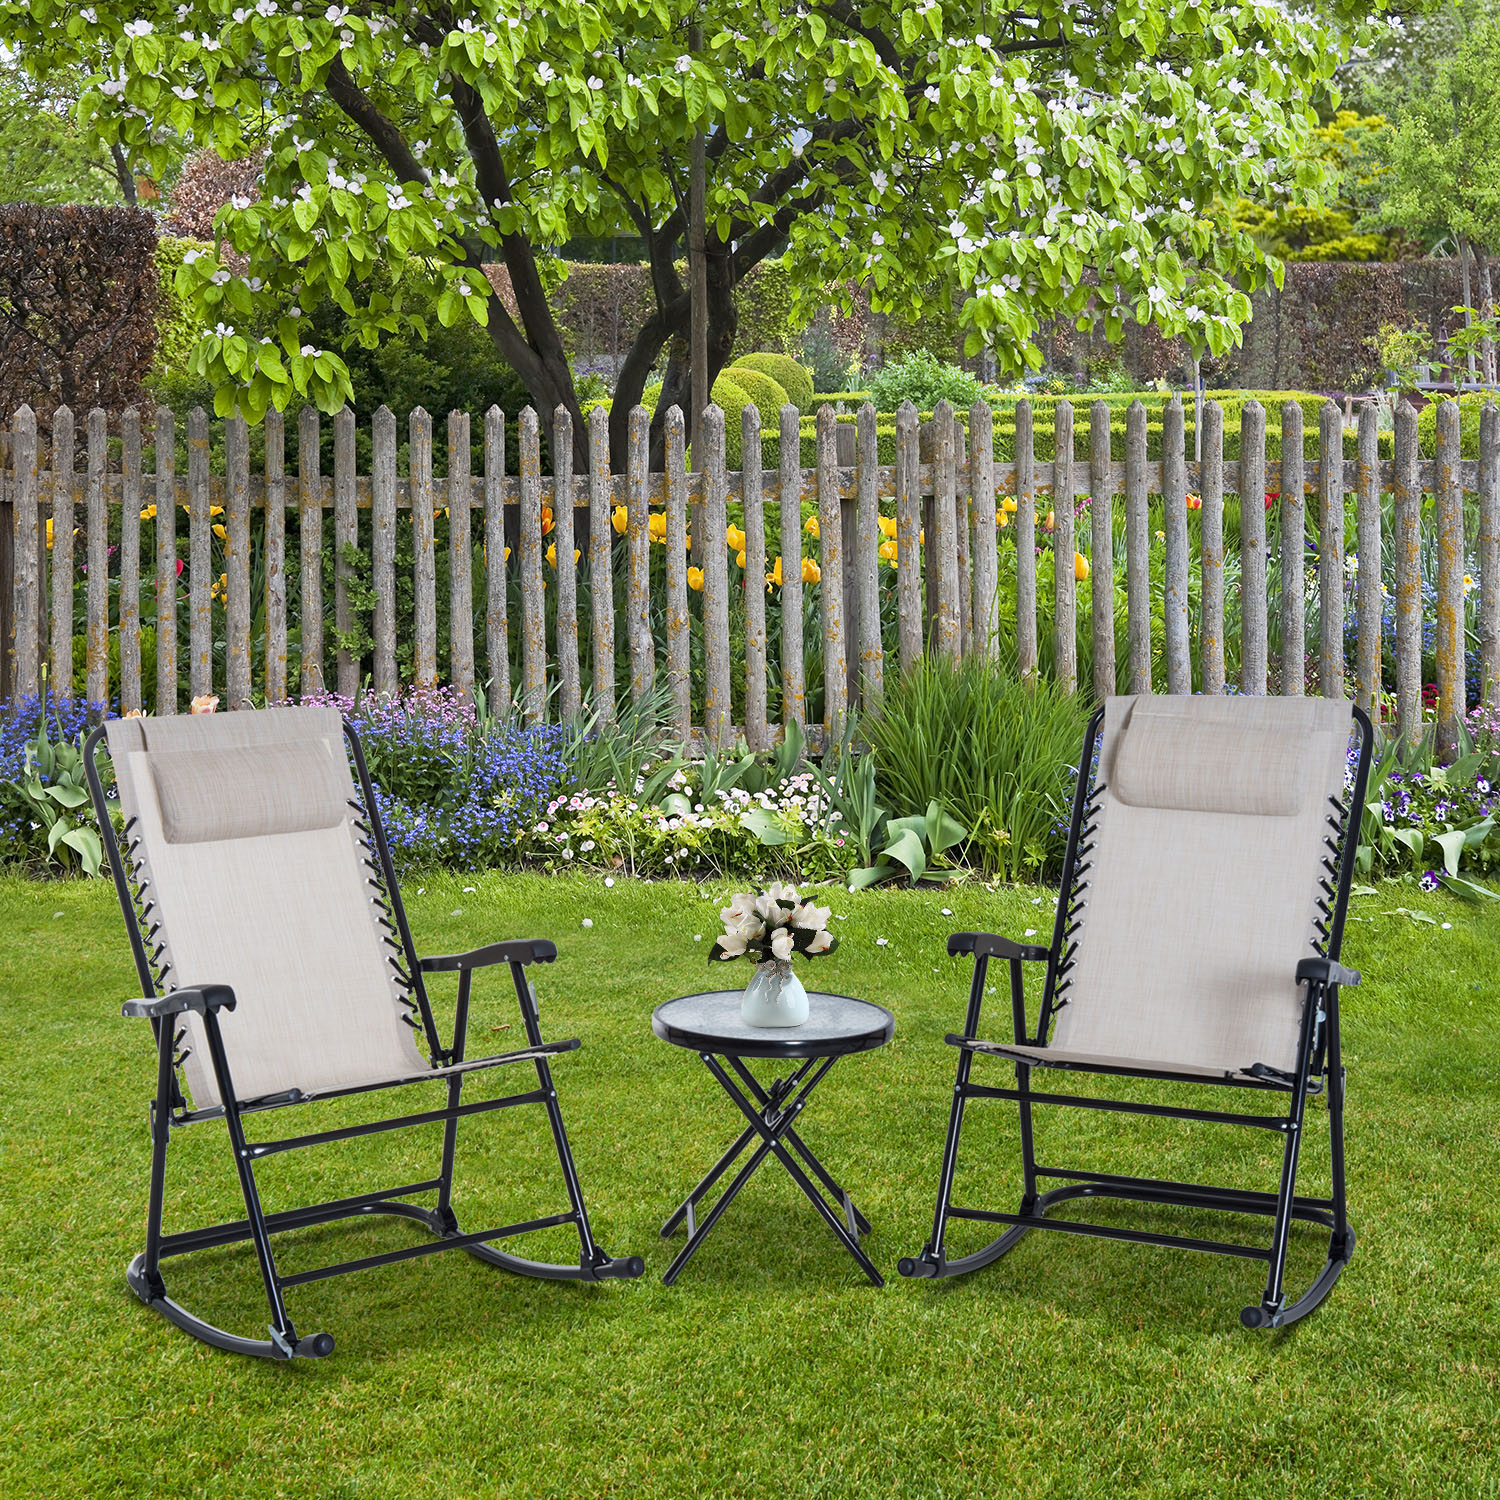 Image of CAD $119.99 Outsunny Outdoor Bistro Set Folding Rocker Portable 2 Chair 1 Side Table / CLEARANCE 3pc Lounger Garden Cream Porch Glider Canada 95509791733